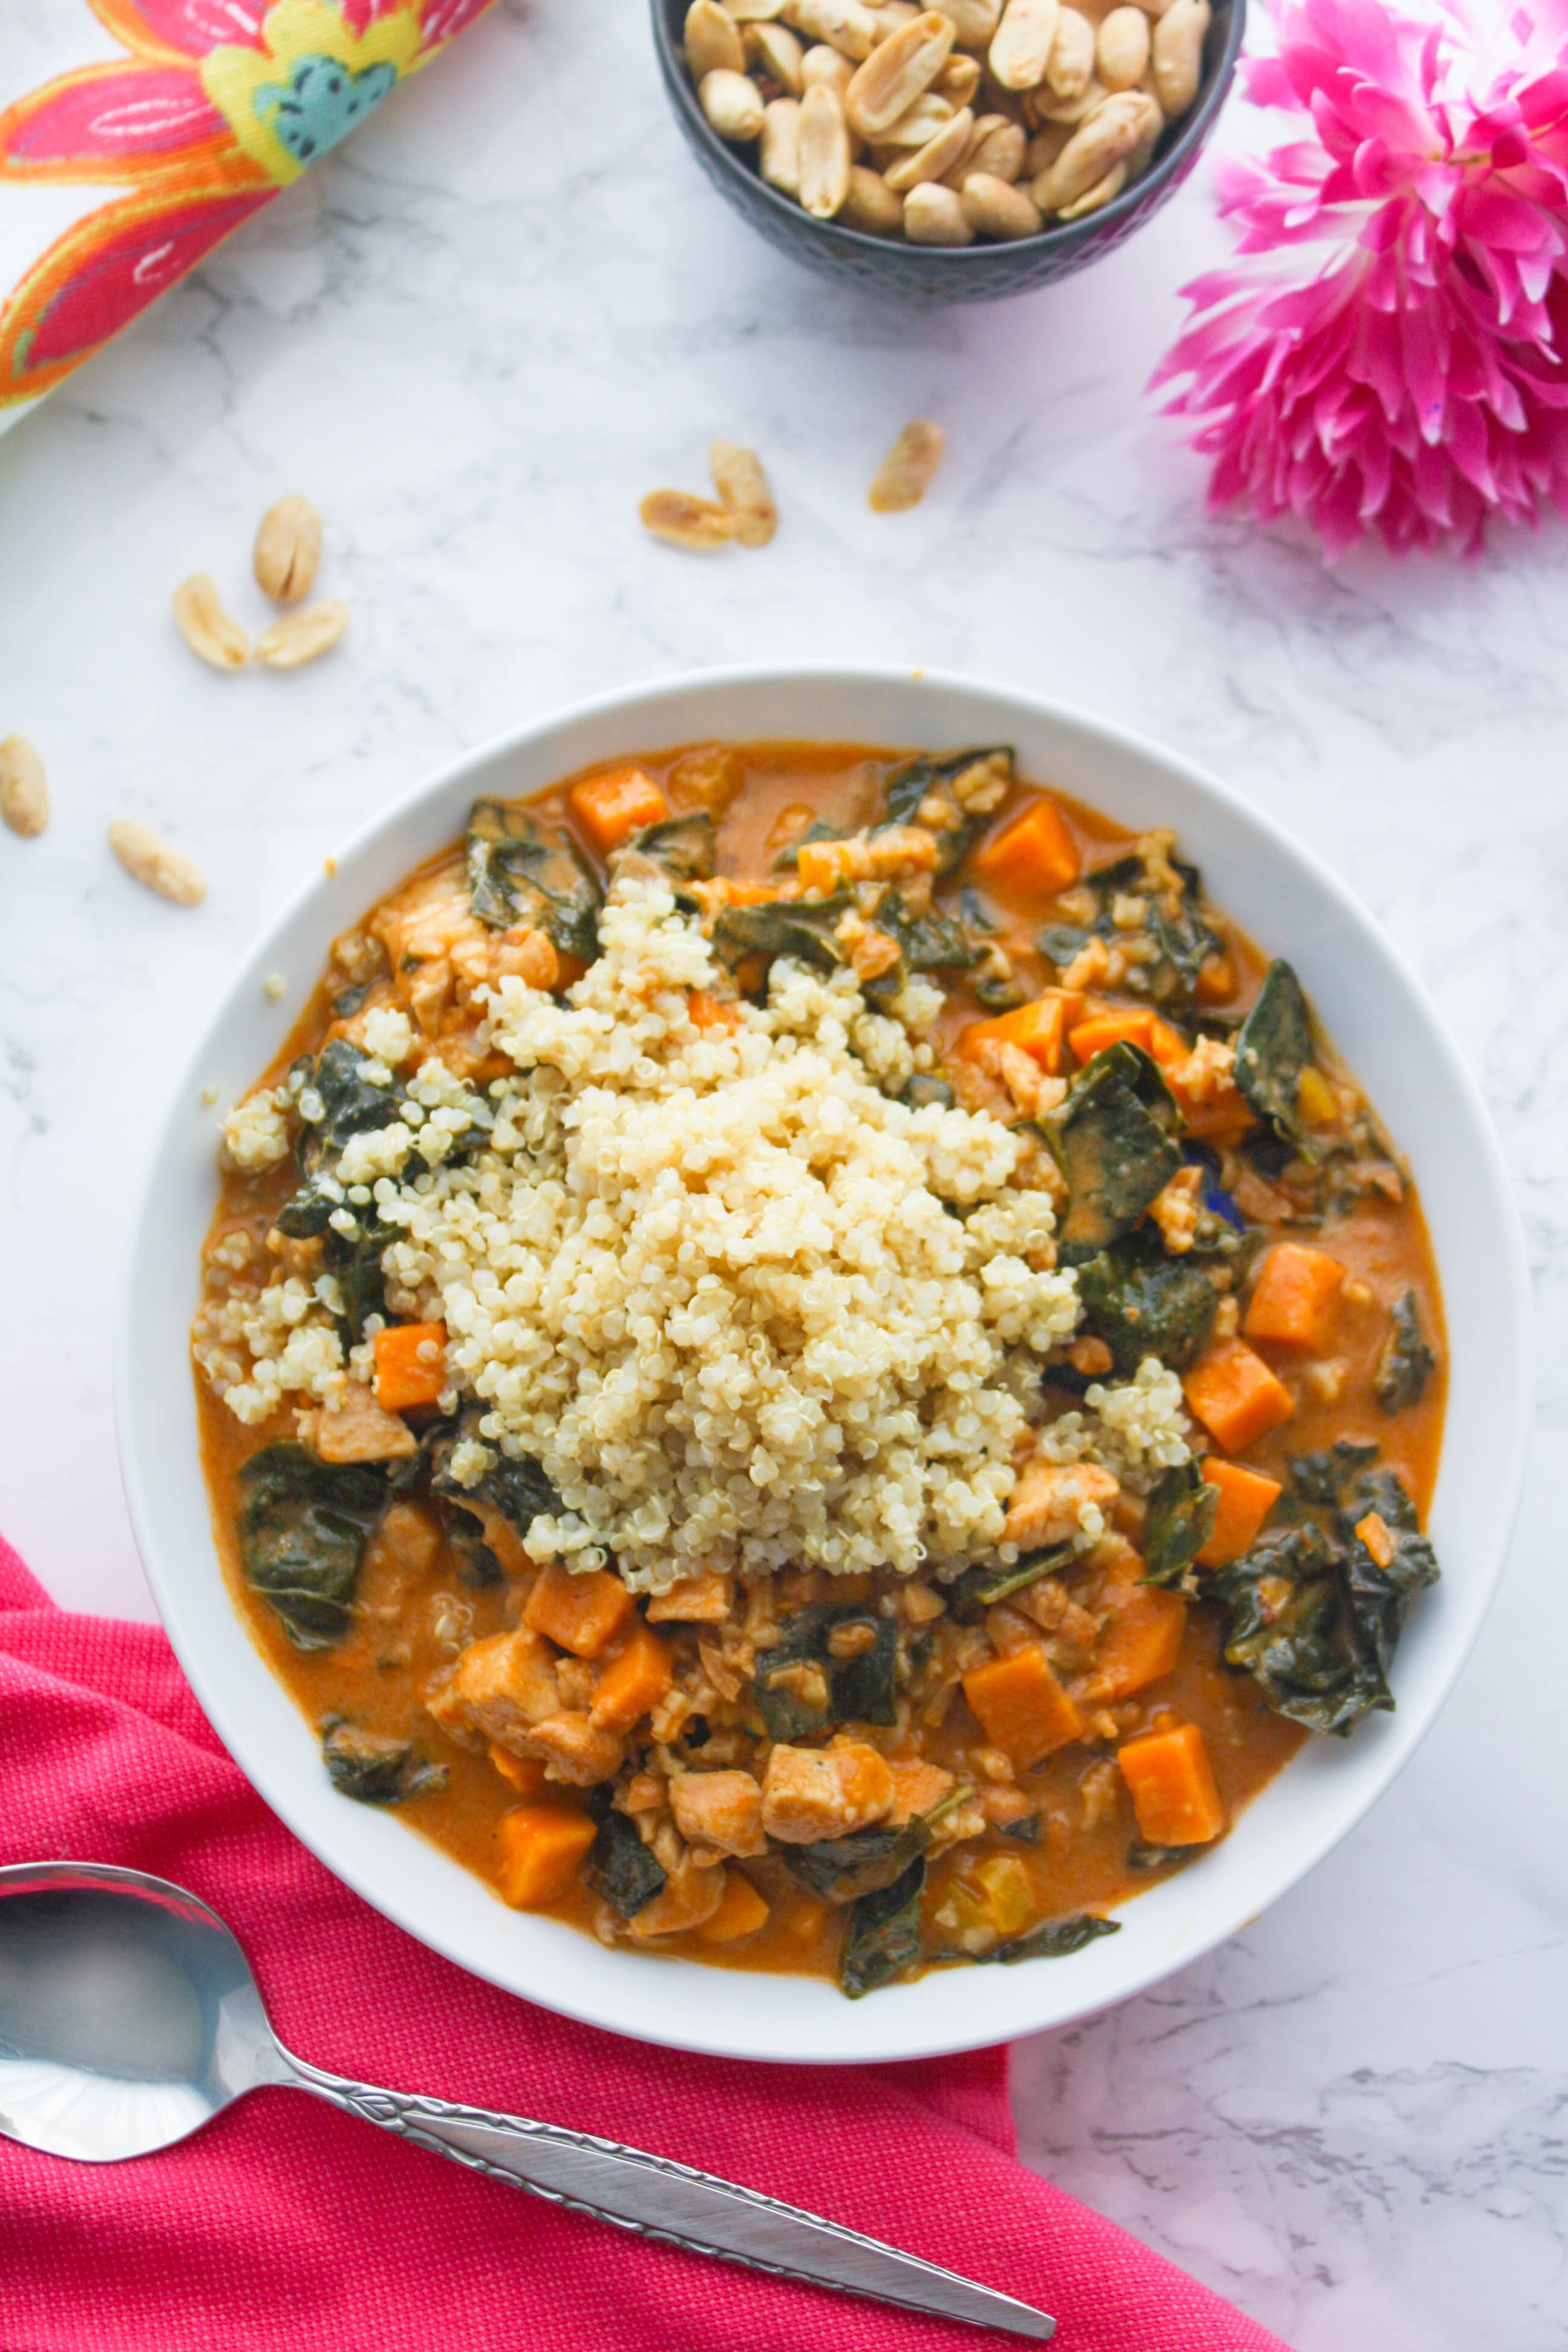 West African Peanut Stew is such a wonderful dish for your next meal. West African Peanut Stew is a beautiful and tasty dish.